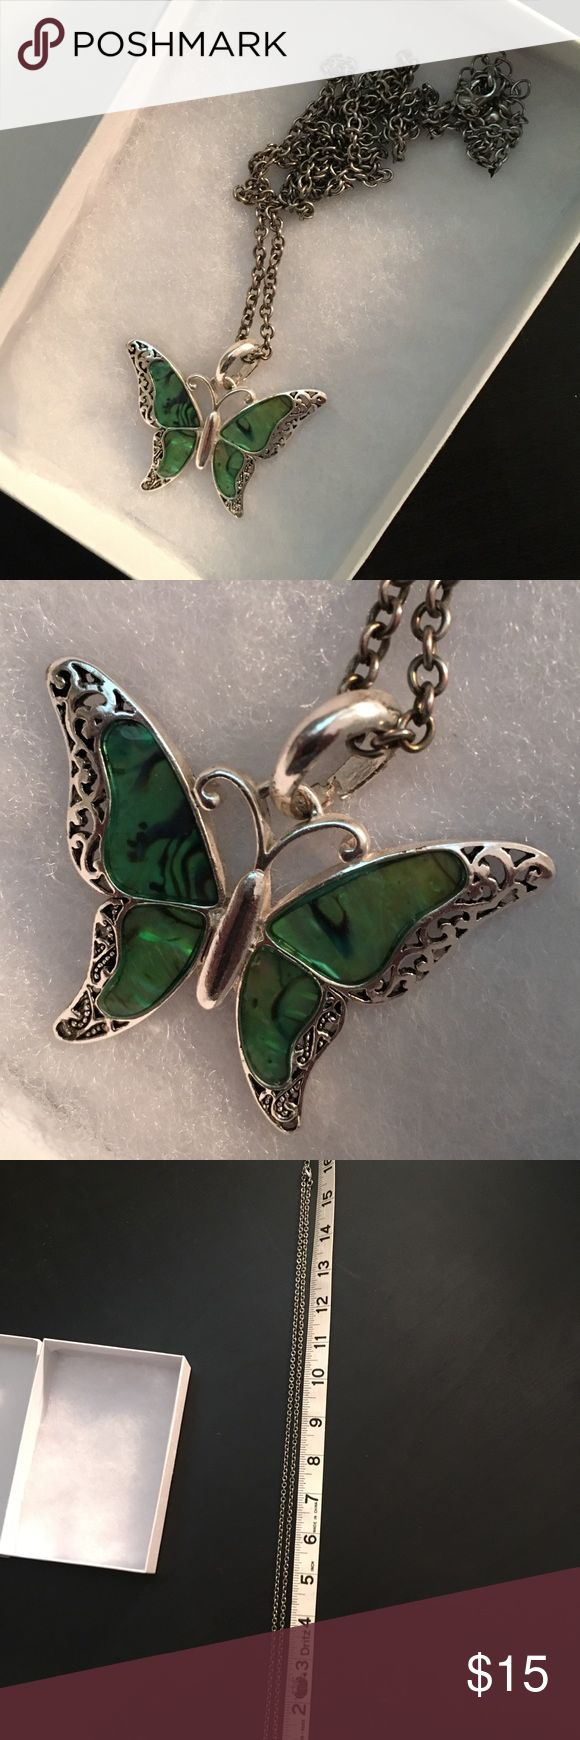 """Butterfly 🦋 Necklace Butterfly Necklace  Chain length approximately 16"""" with 3.5"""" extender Jewelry Necklaces"""